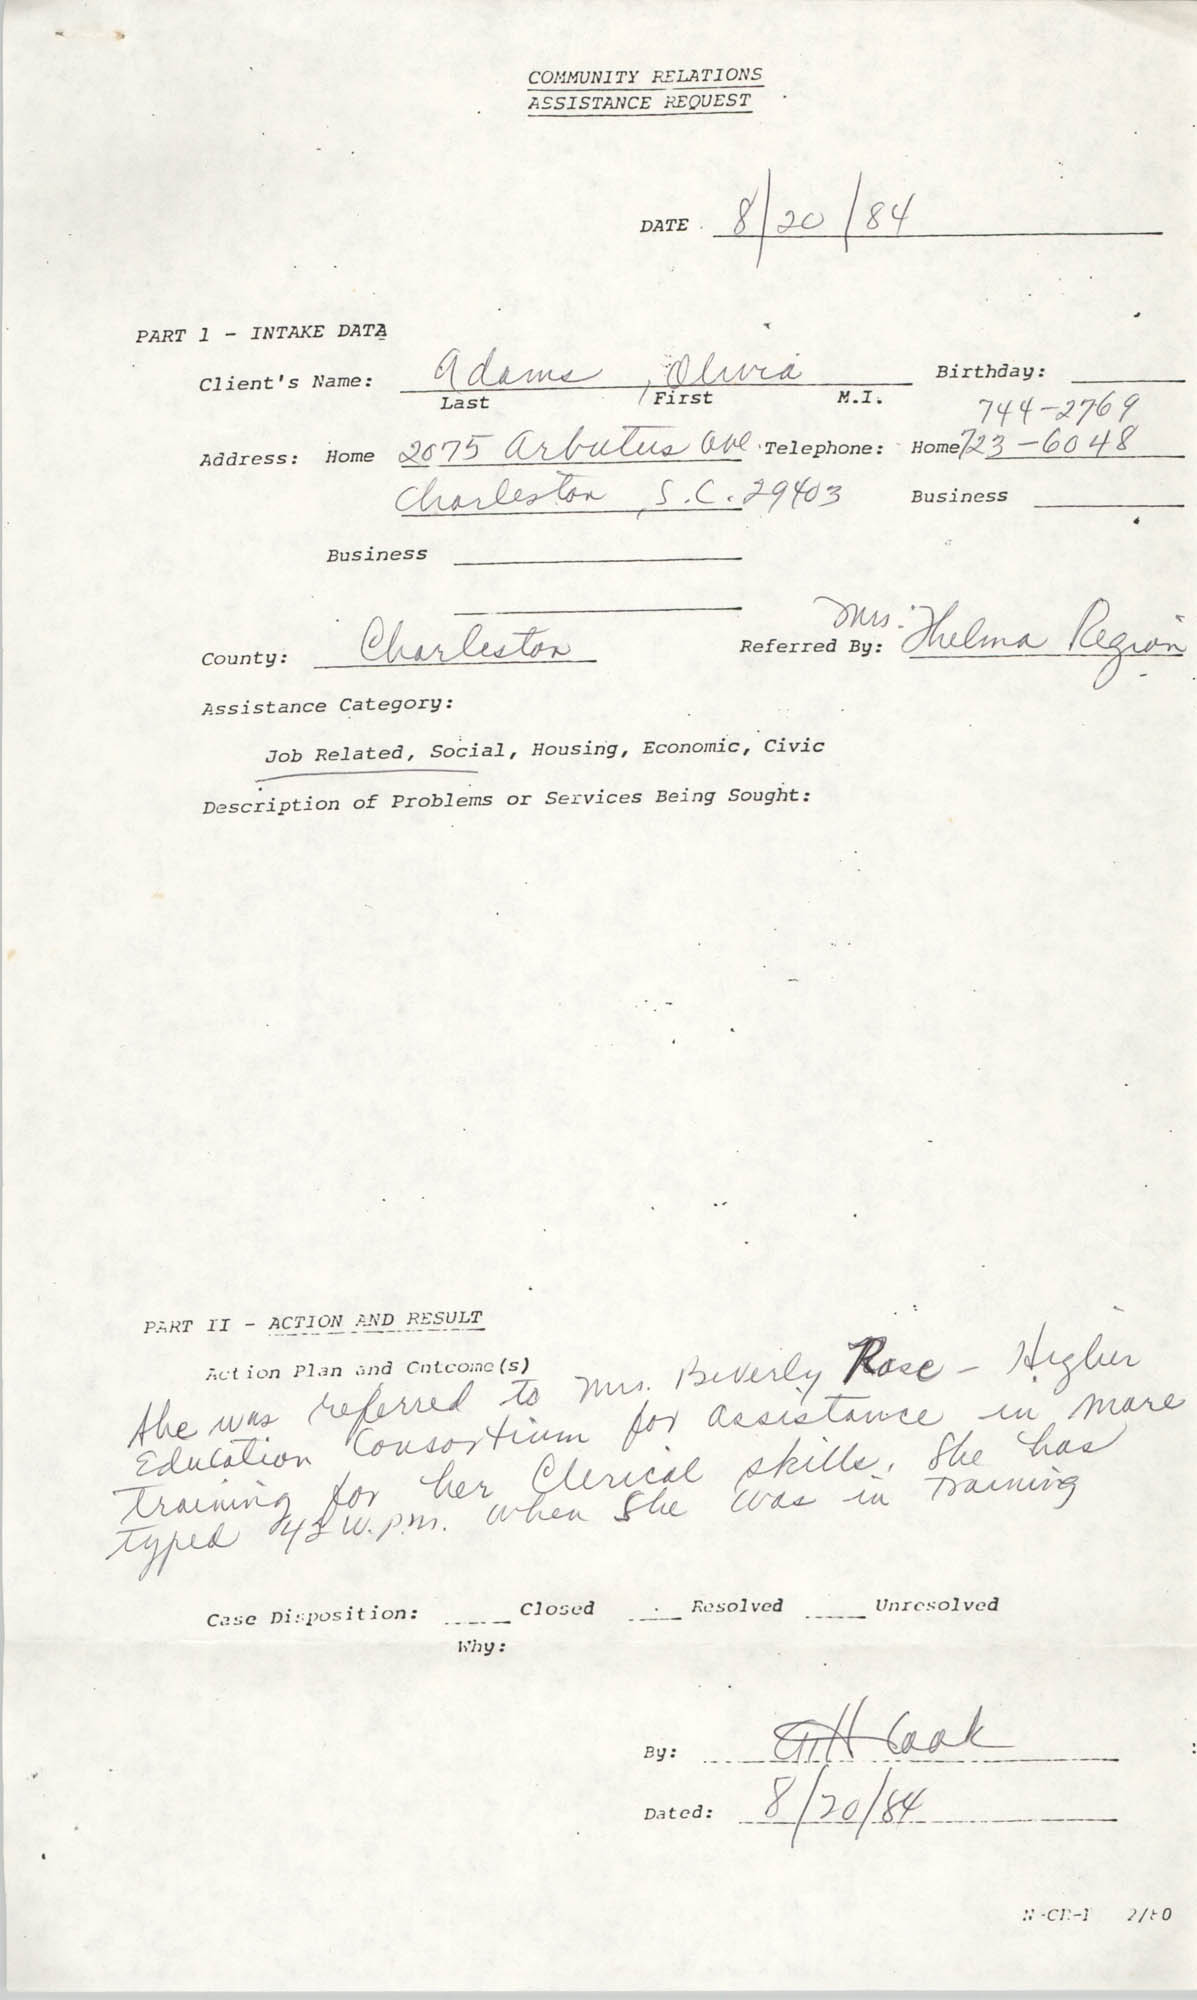 Community Relations Assistance Request, August 20, 1984